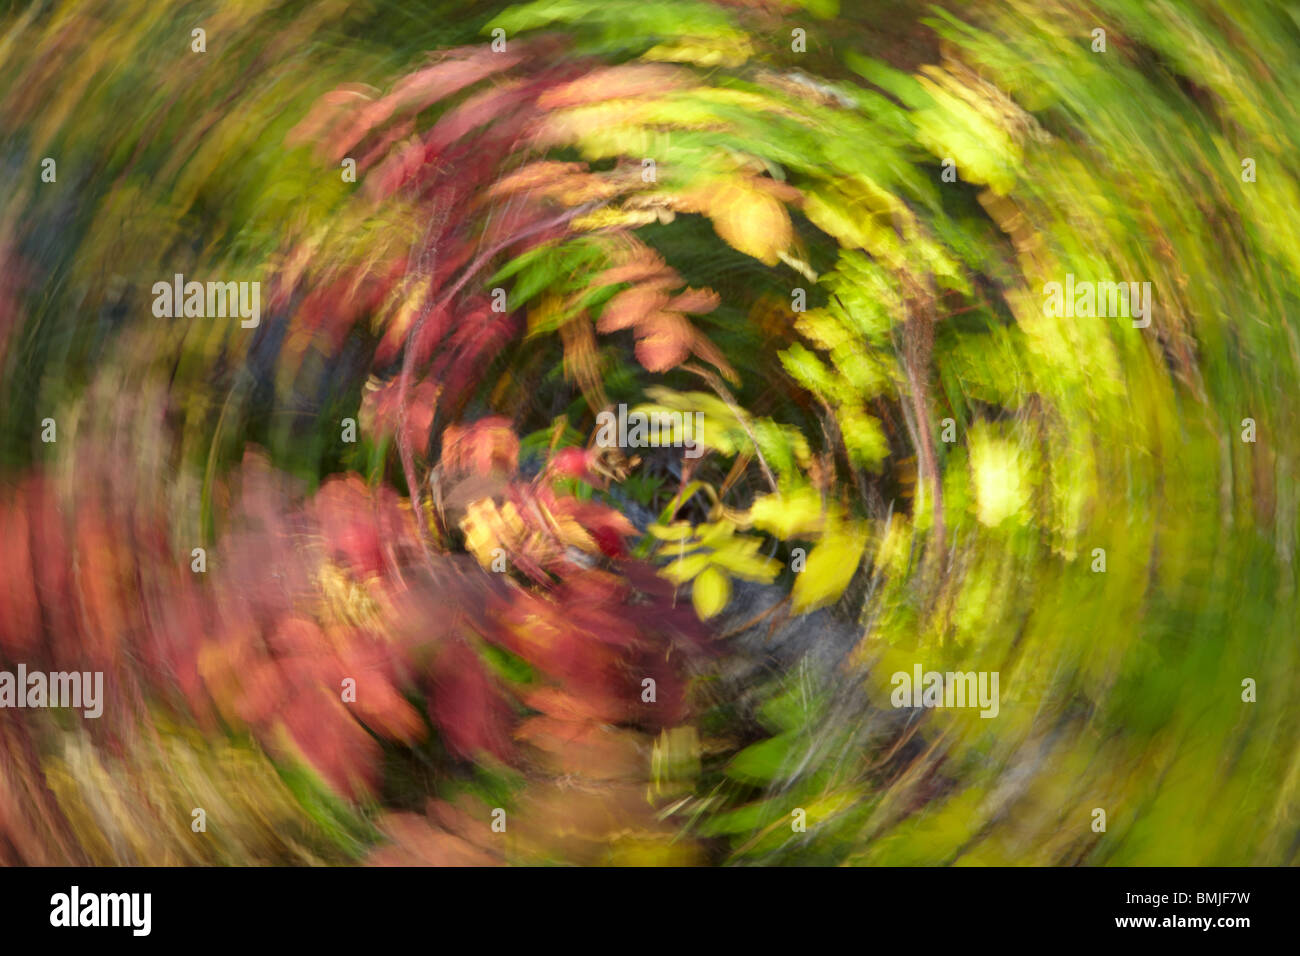 circular motion blur on the autumn colours, Jasper National Park, Alberta, Canada - Stock Image